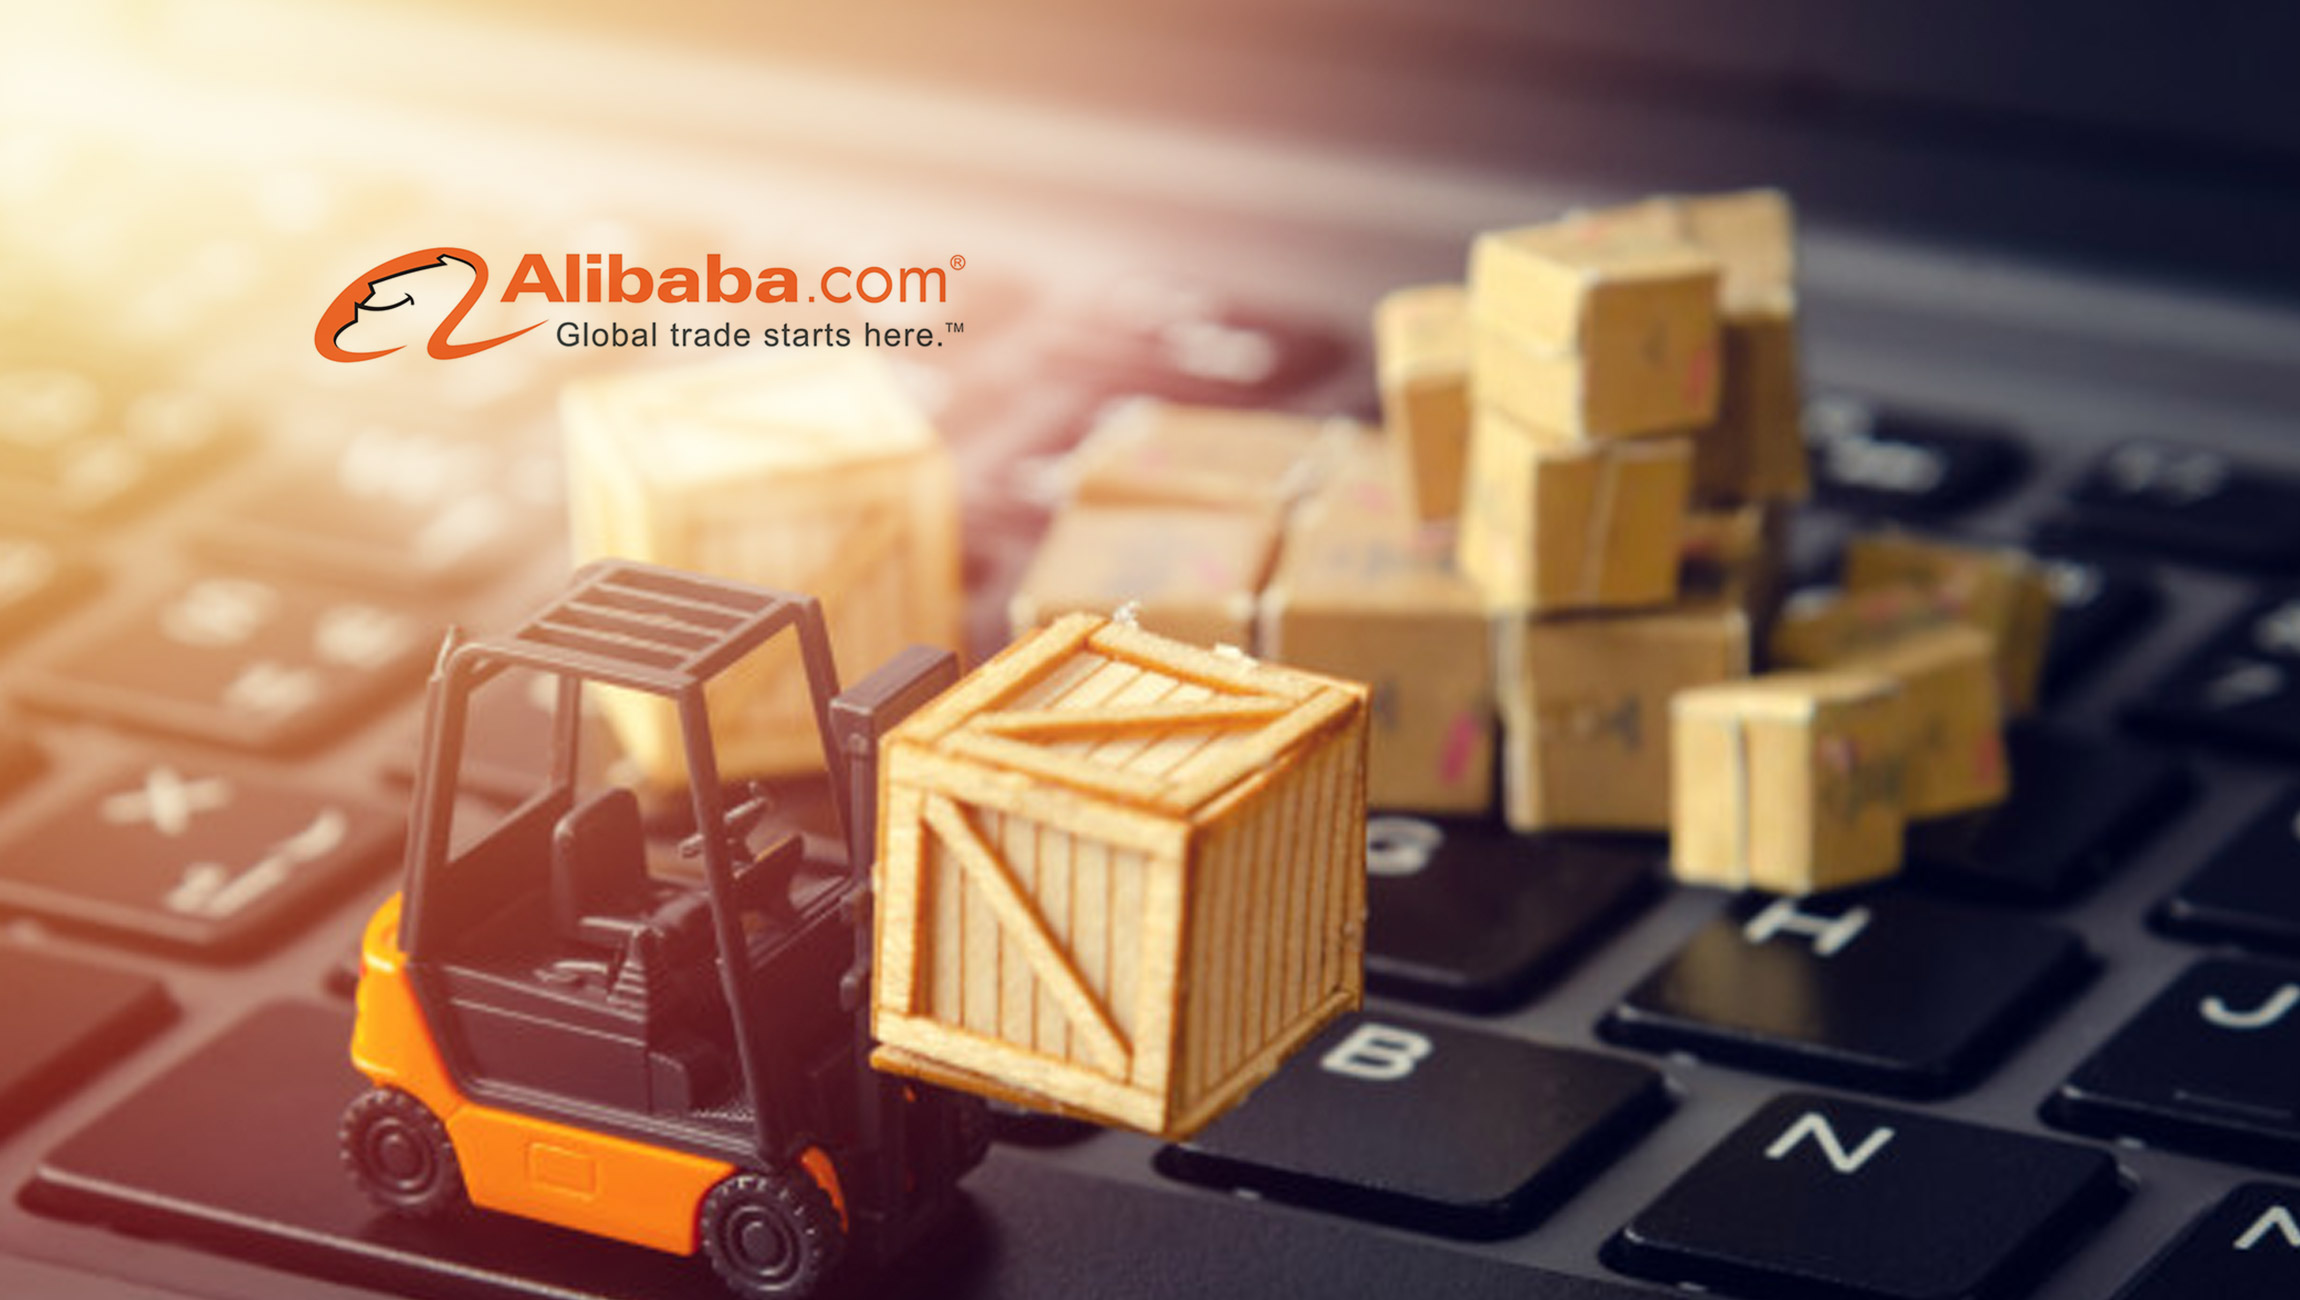 BMW and Alibaba Sign a MoU for Strategic Partnership Promoting Digital Transformation Across Businesses